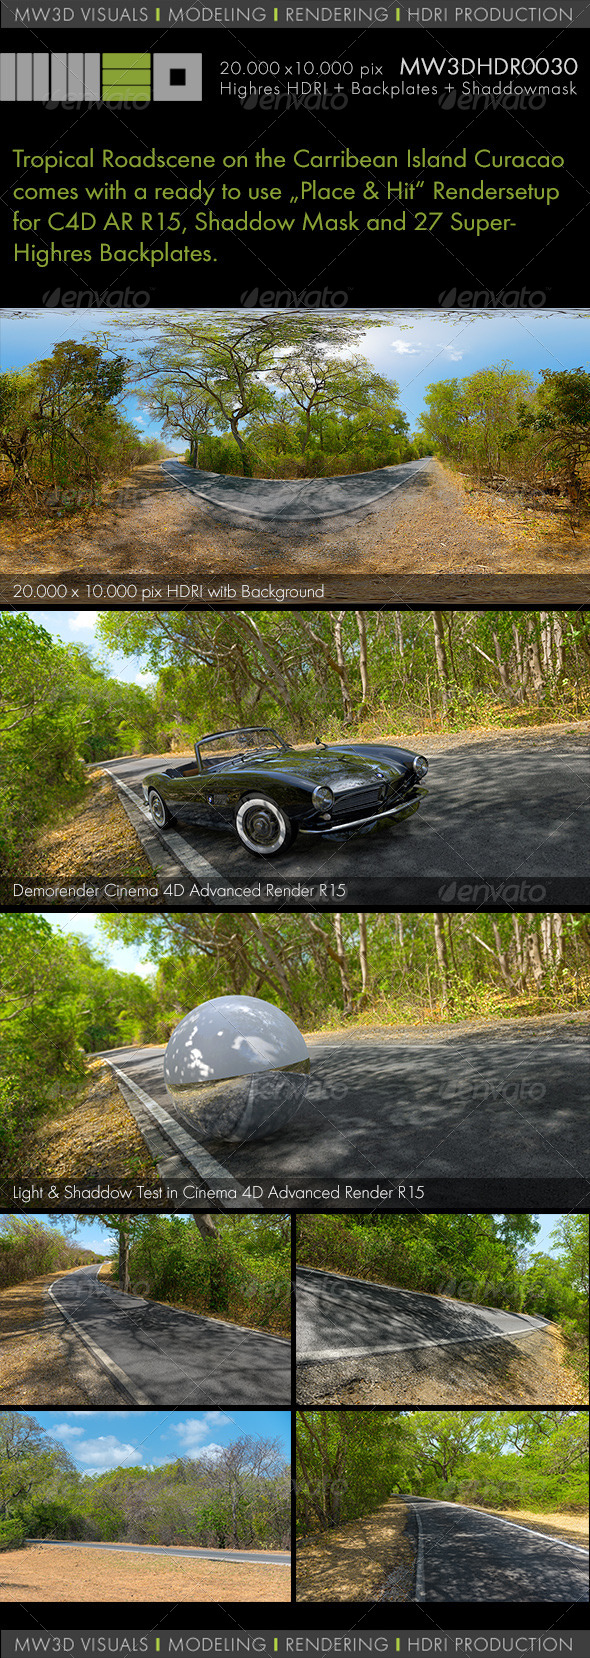 MW3DHDR0030 Roadscene / Carribean Island Curacao - 3DOcean Item for Sale